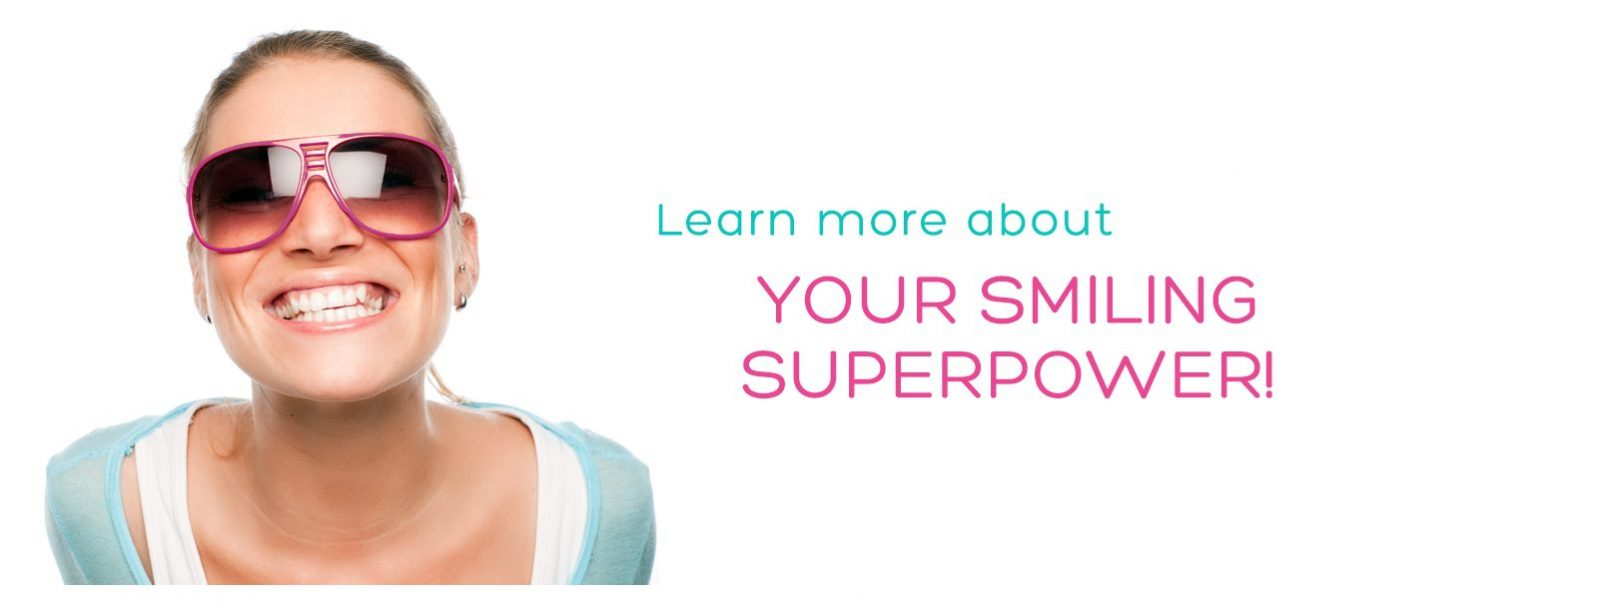 Smiling Superpower